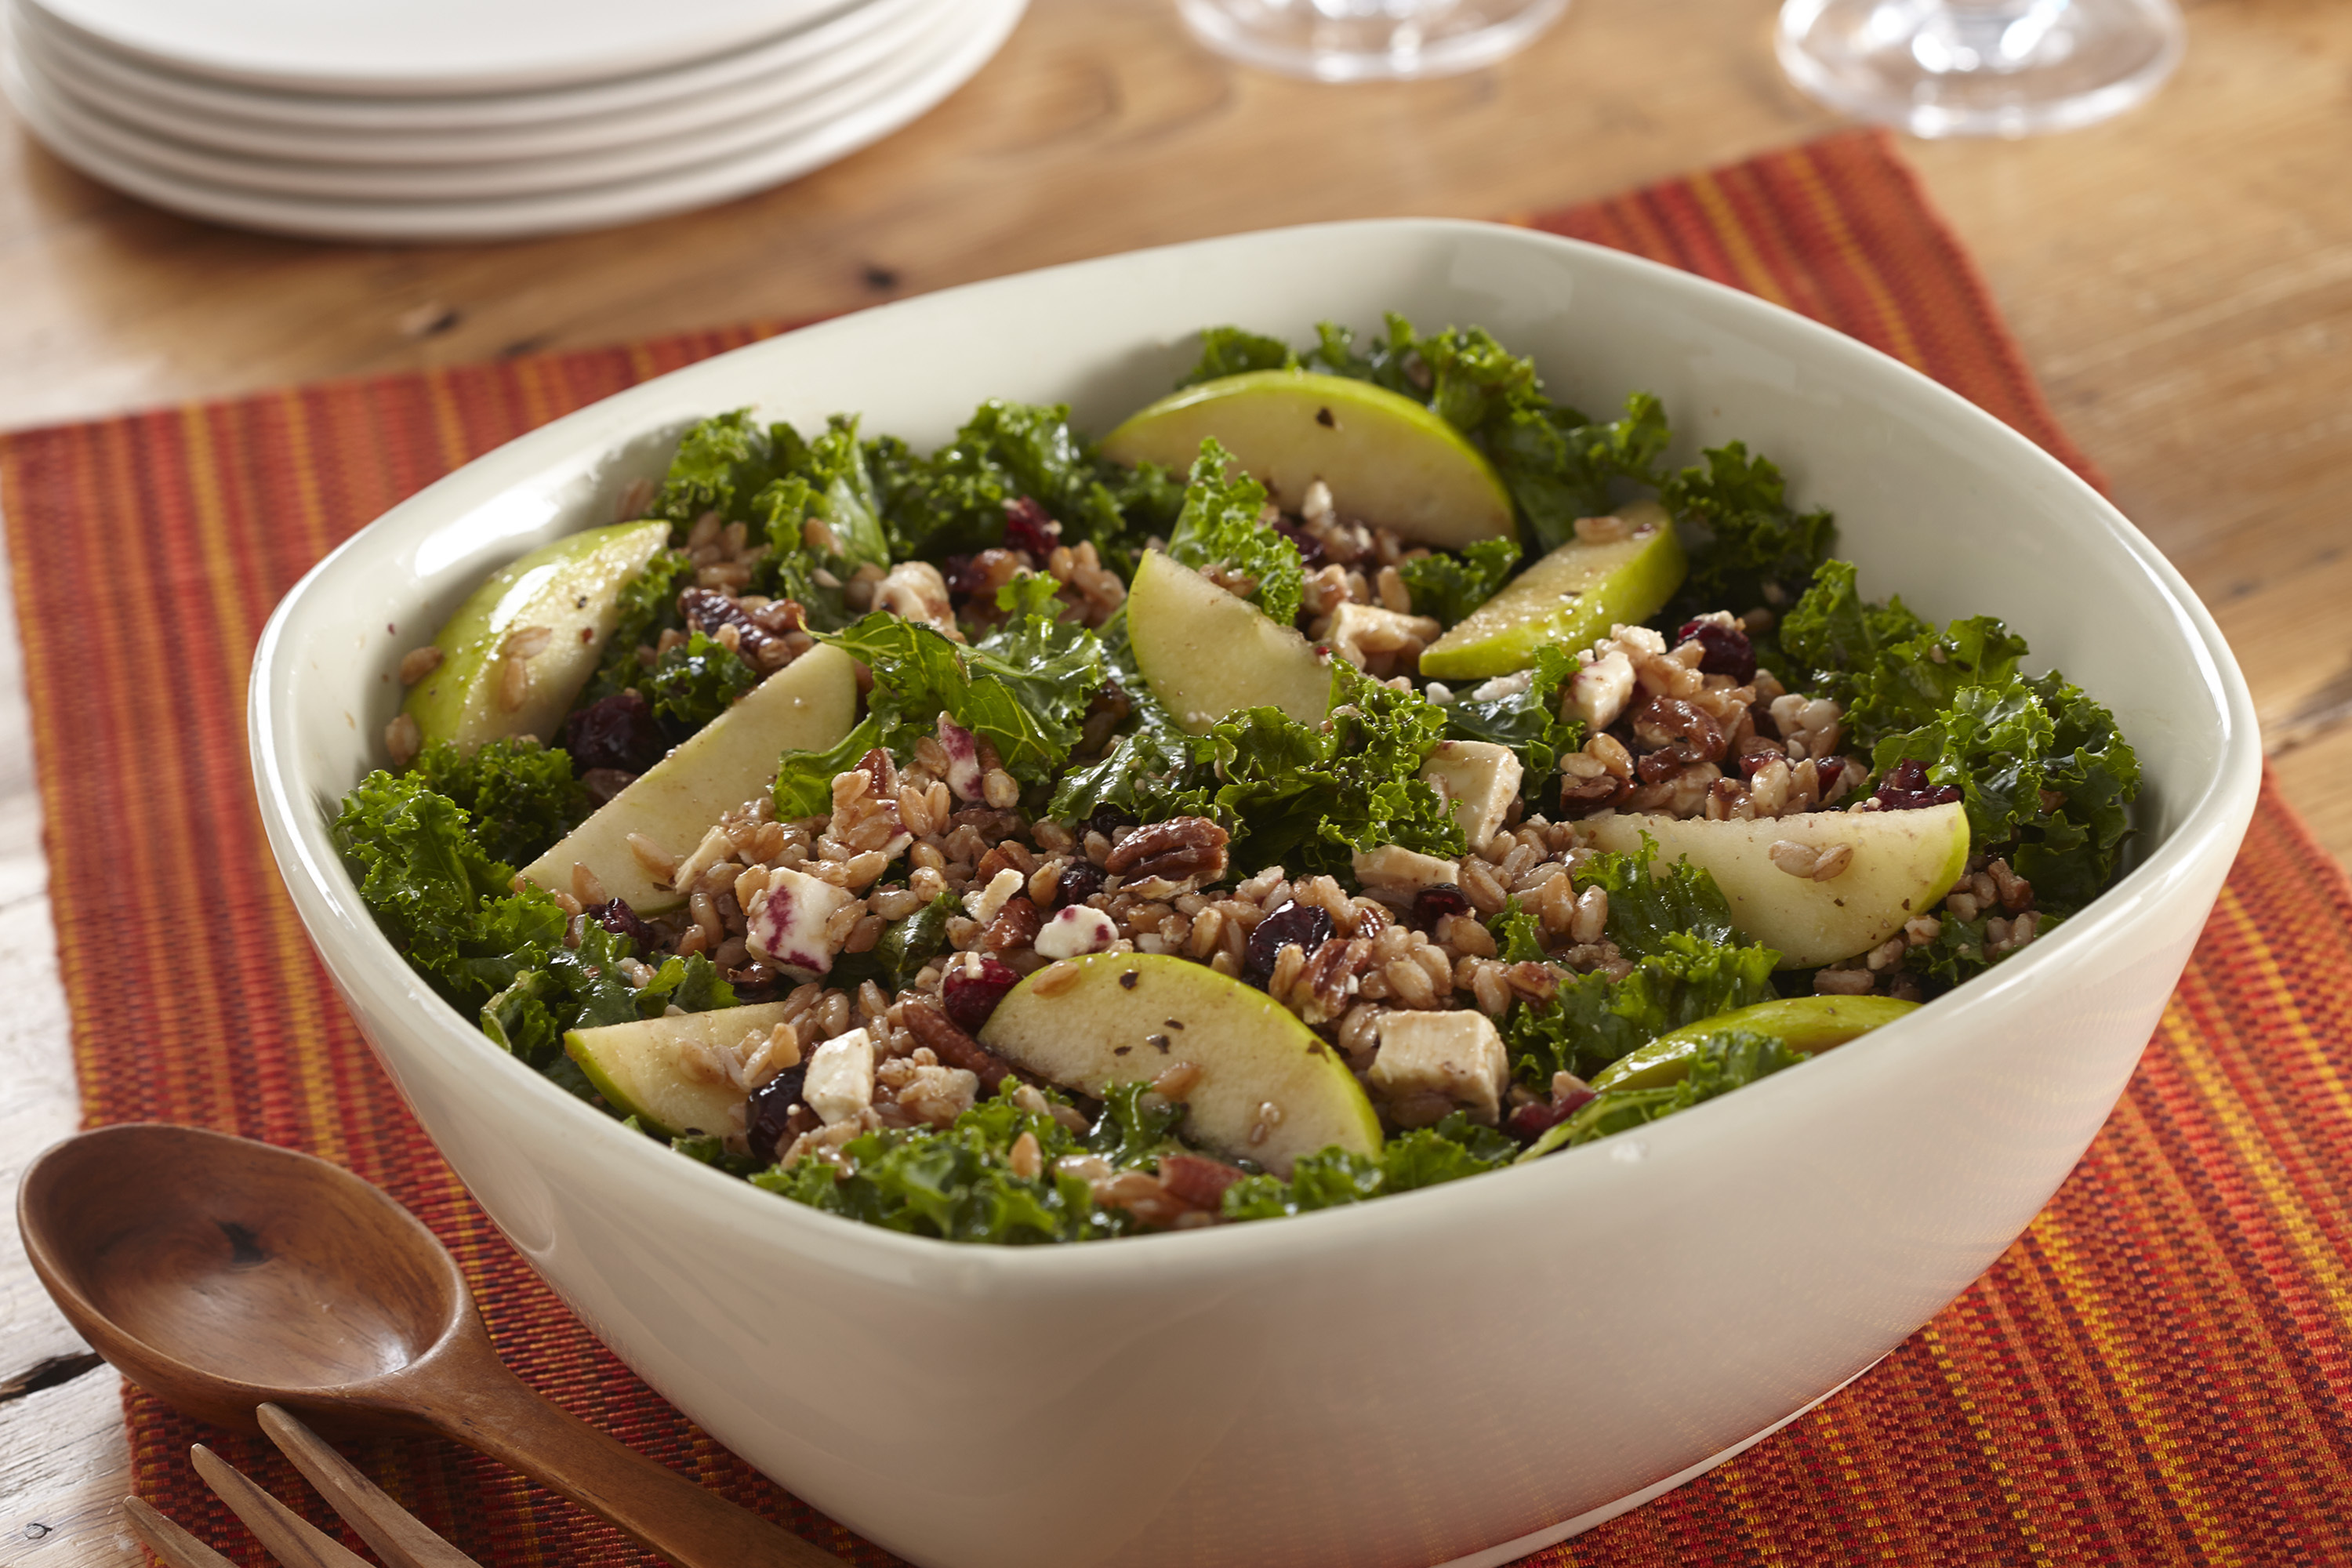 Apple, Kale and Farro Harvest Salad